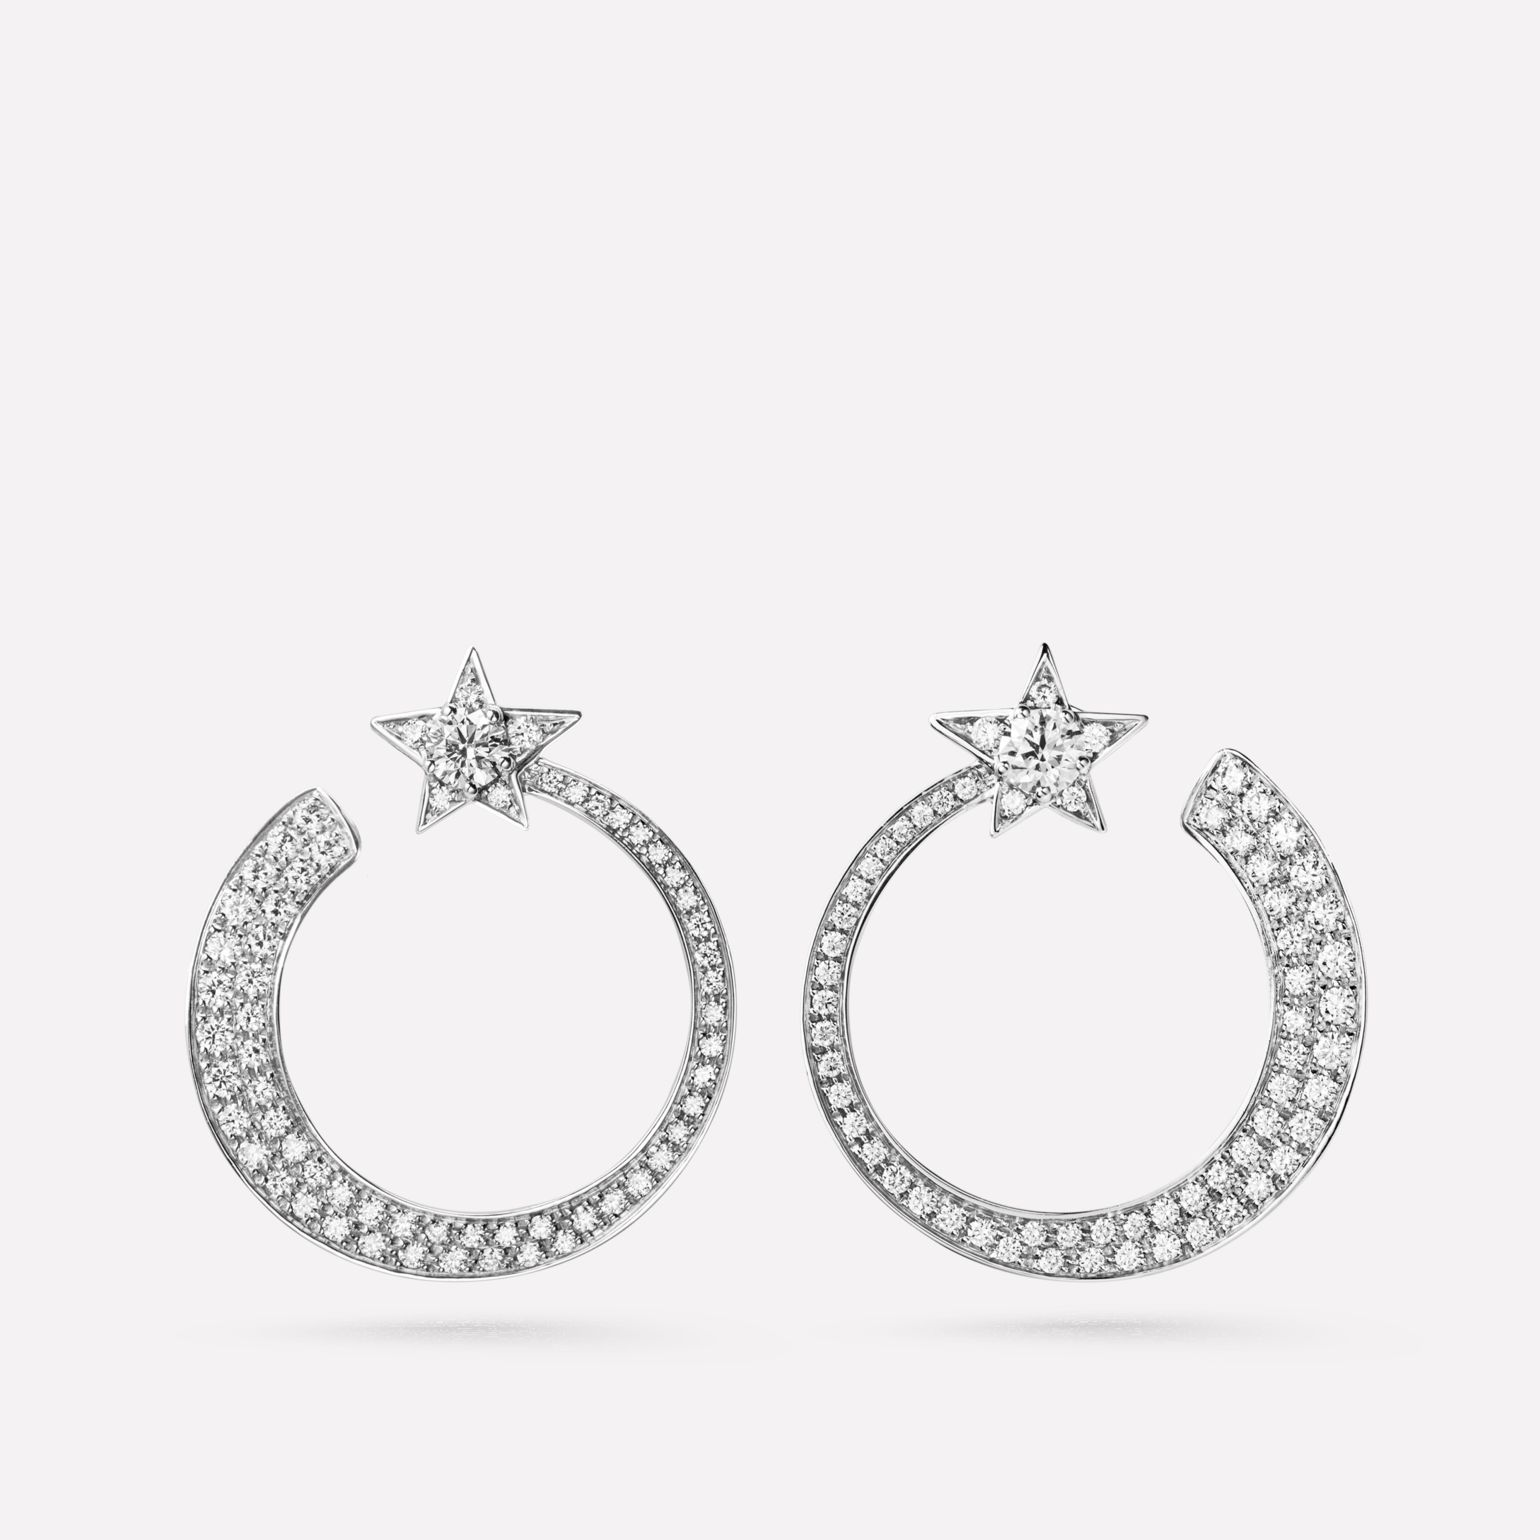 Comète Earrings Star hoop earrings in 18K white gold and diamonds